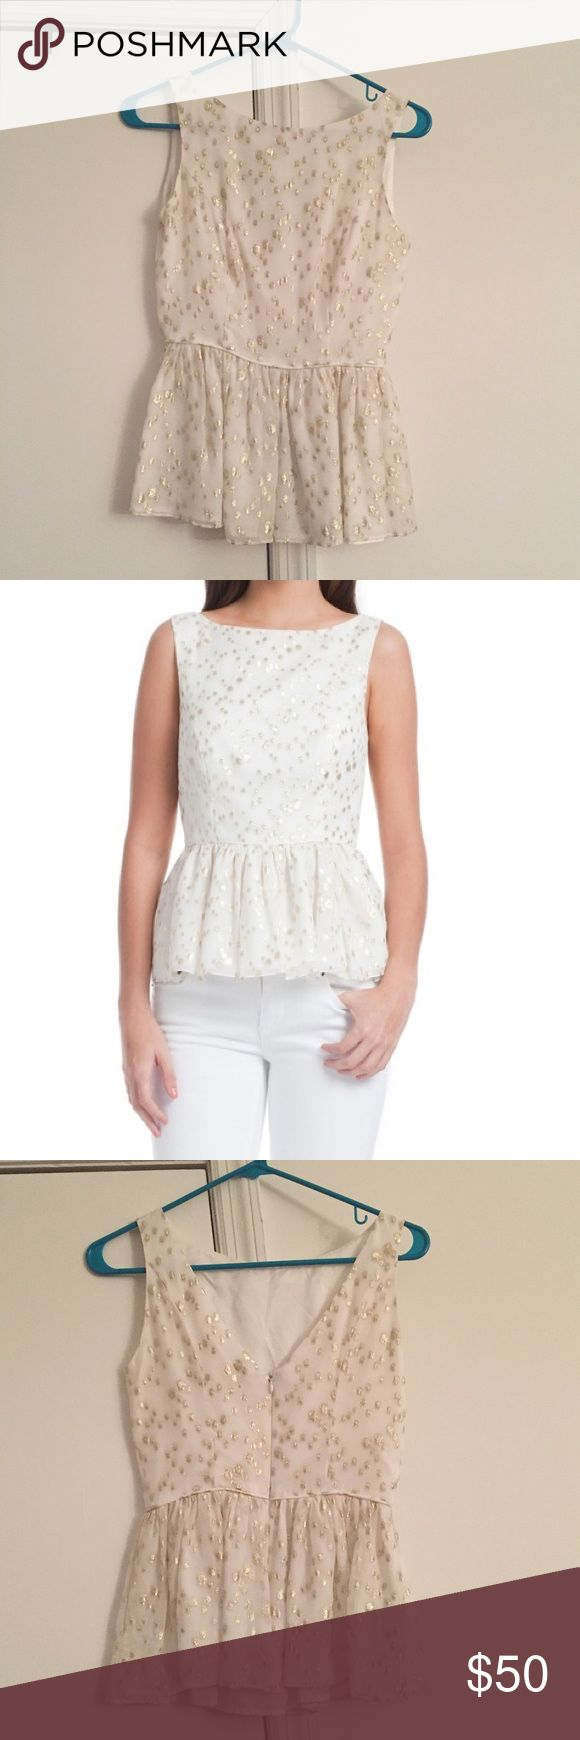 Shosanna peplum top White peplum tank/top from Shosanna. Has gold girl details on the top. Size: 0. Barely worn, in good condition Shoshanna Tops